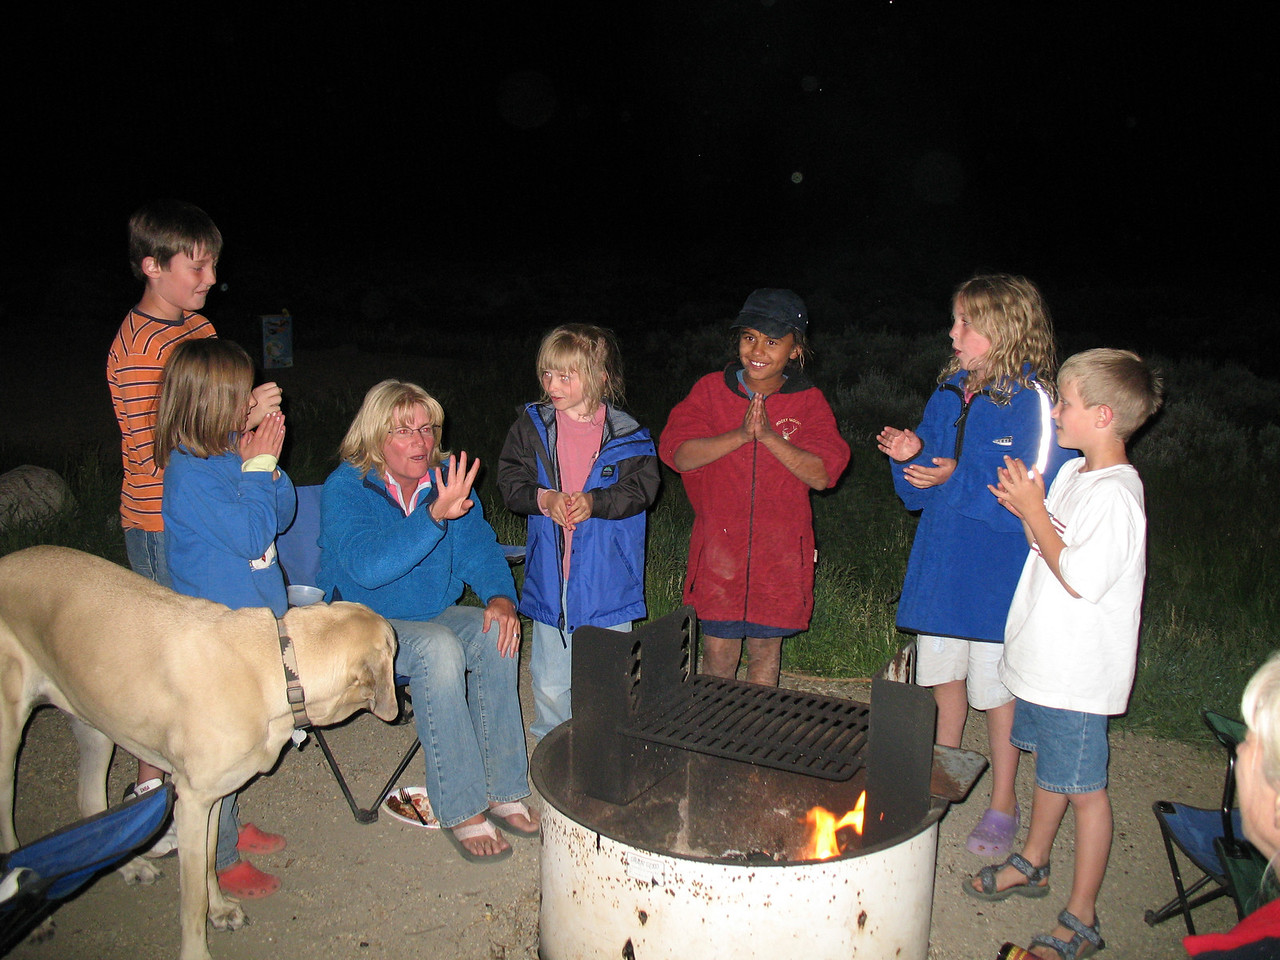 Maggy May was just one of the kids around the campfire.